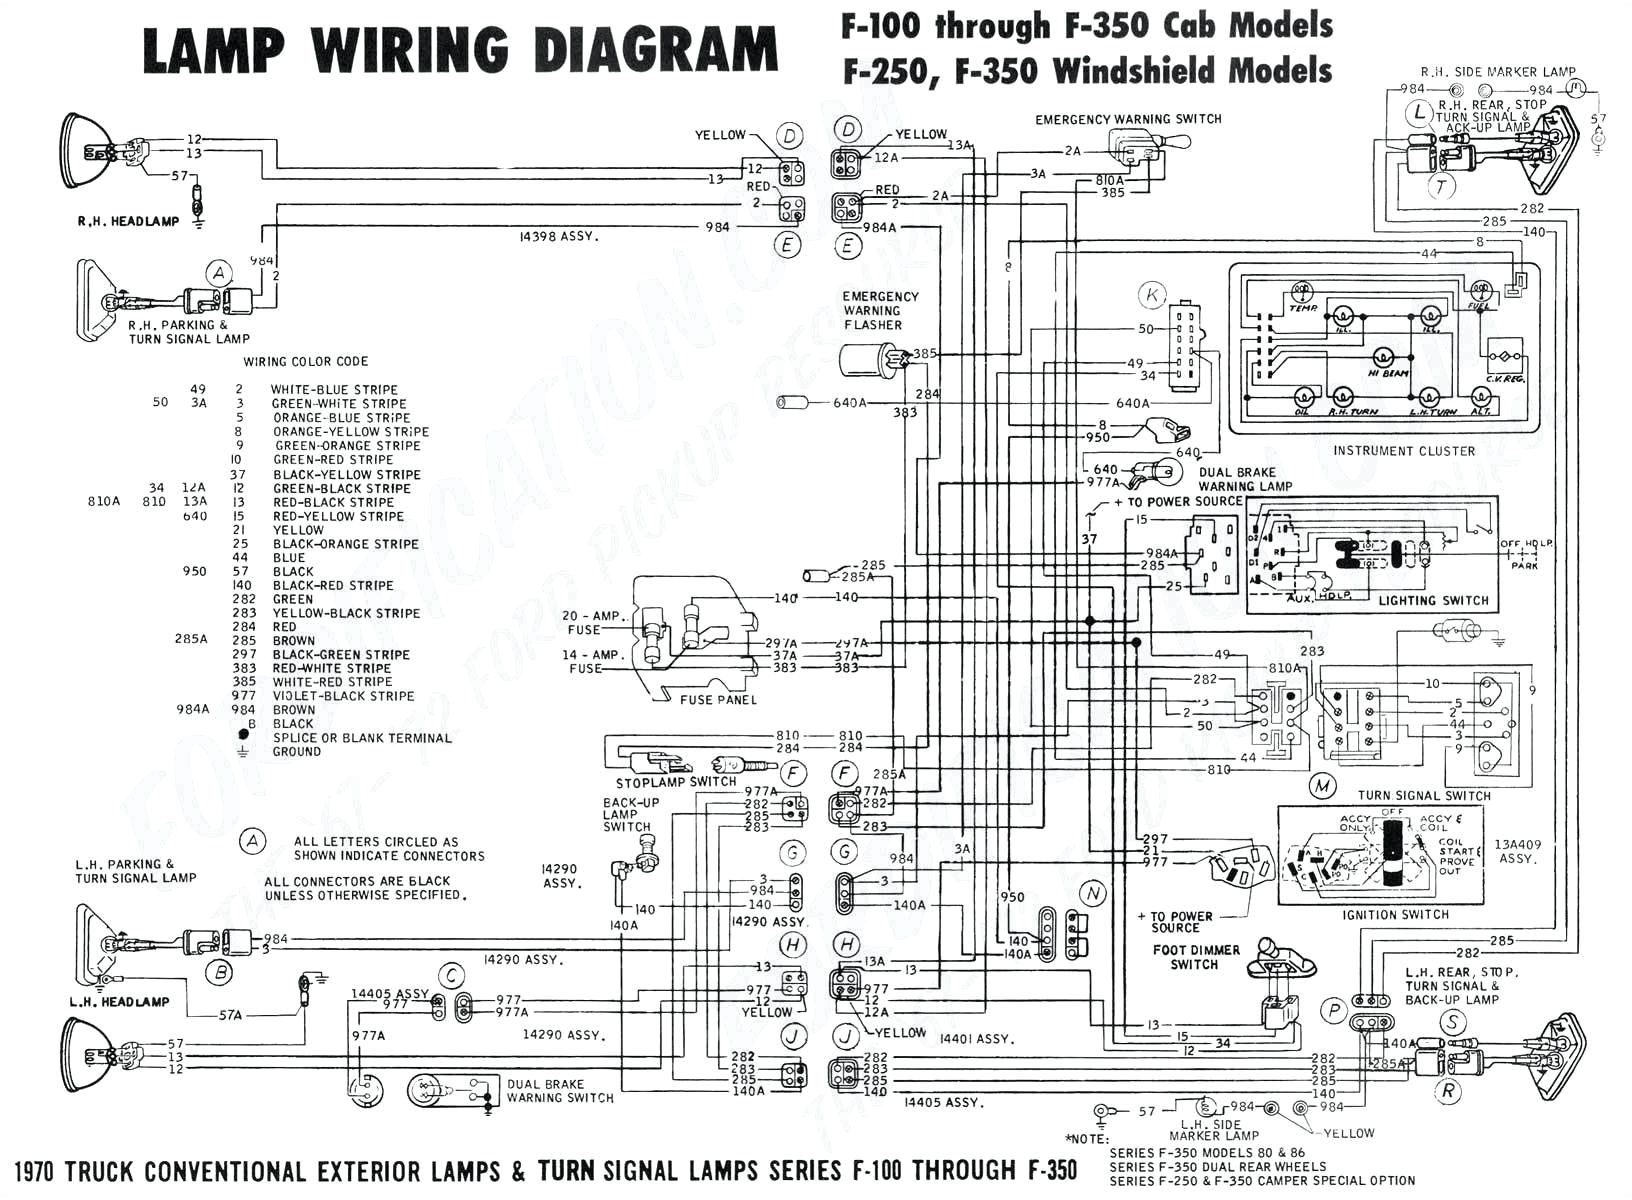 Allstate Scooter Wiring Diagram Schematic on 1954 cushman scooter, 1954 allstate car, 1954 lambretta scooter,